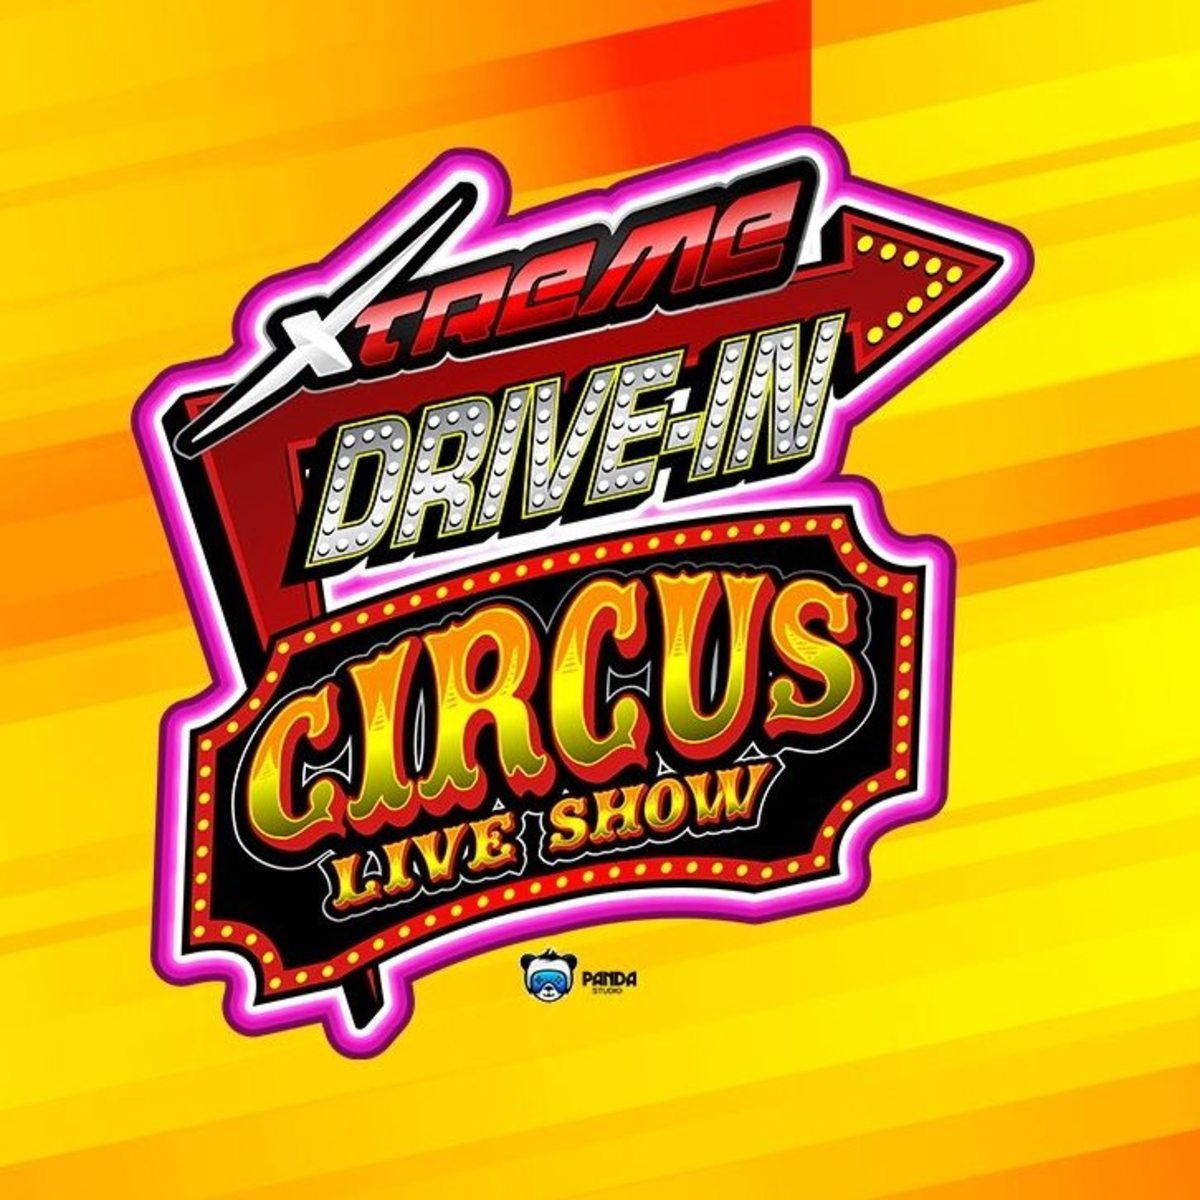 Extreme Drive-in Circus Live Show